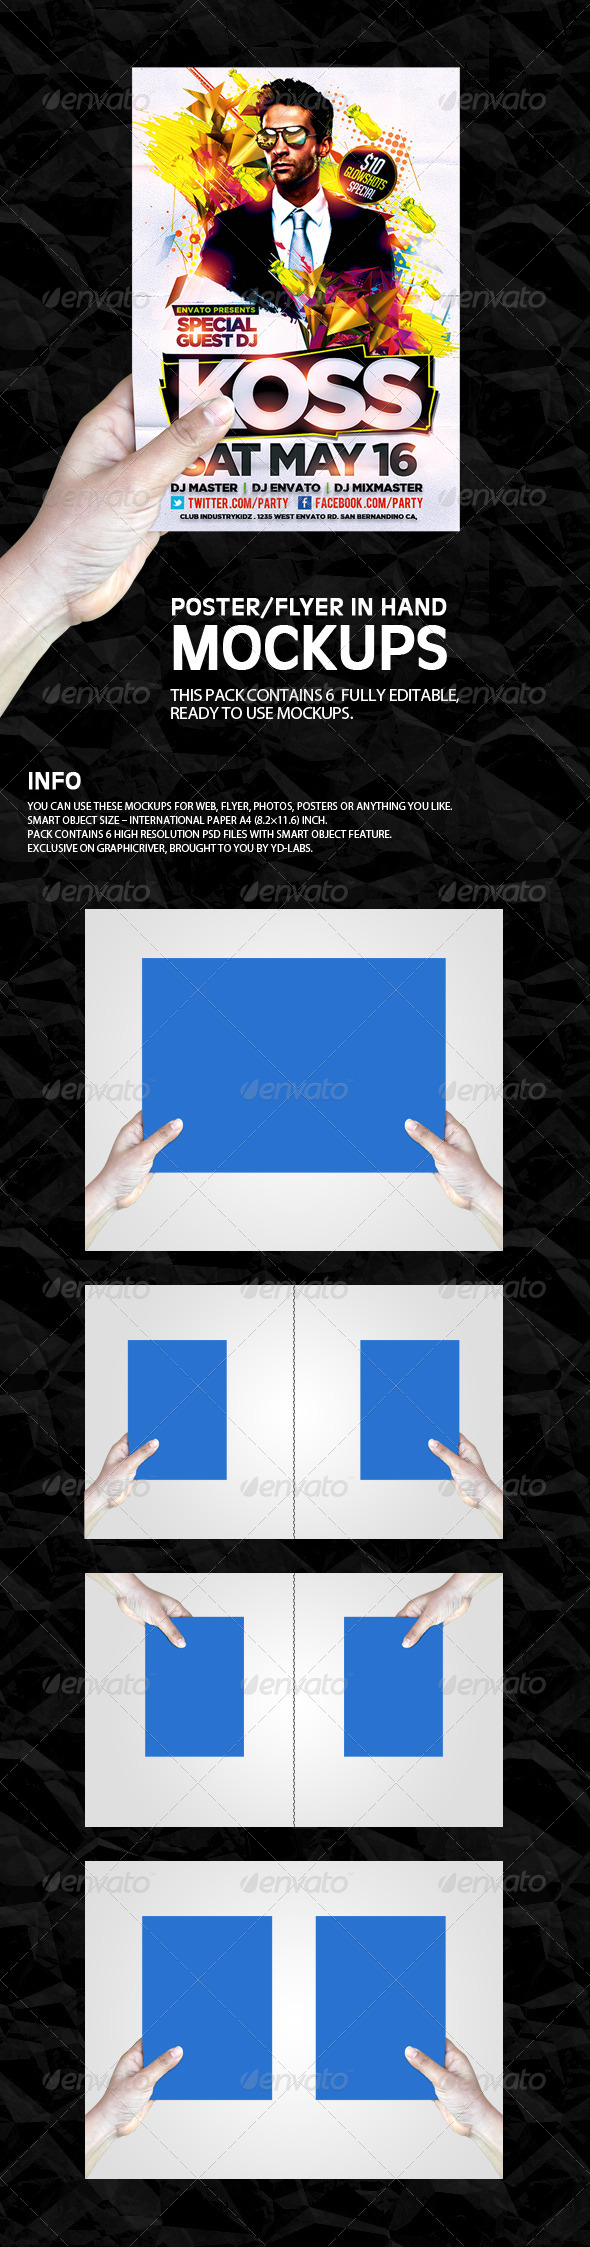 GraphicRiver Flyer Poster In Hand Mockups 5121989